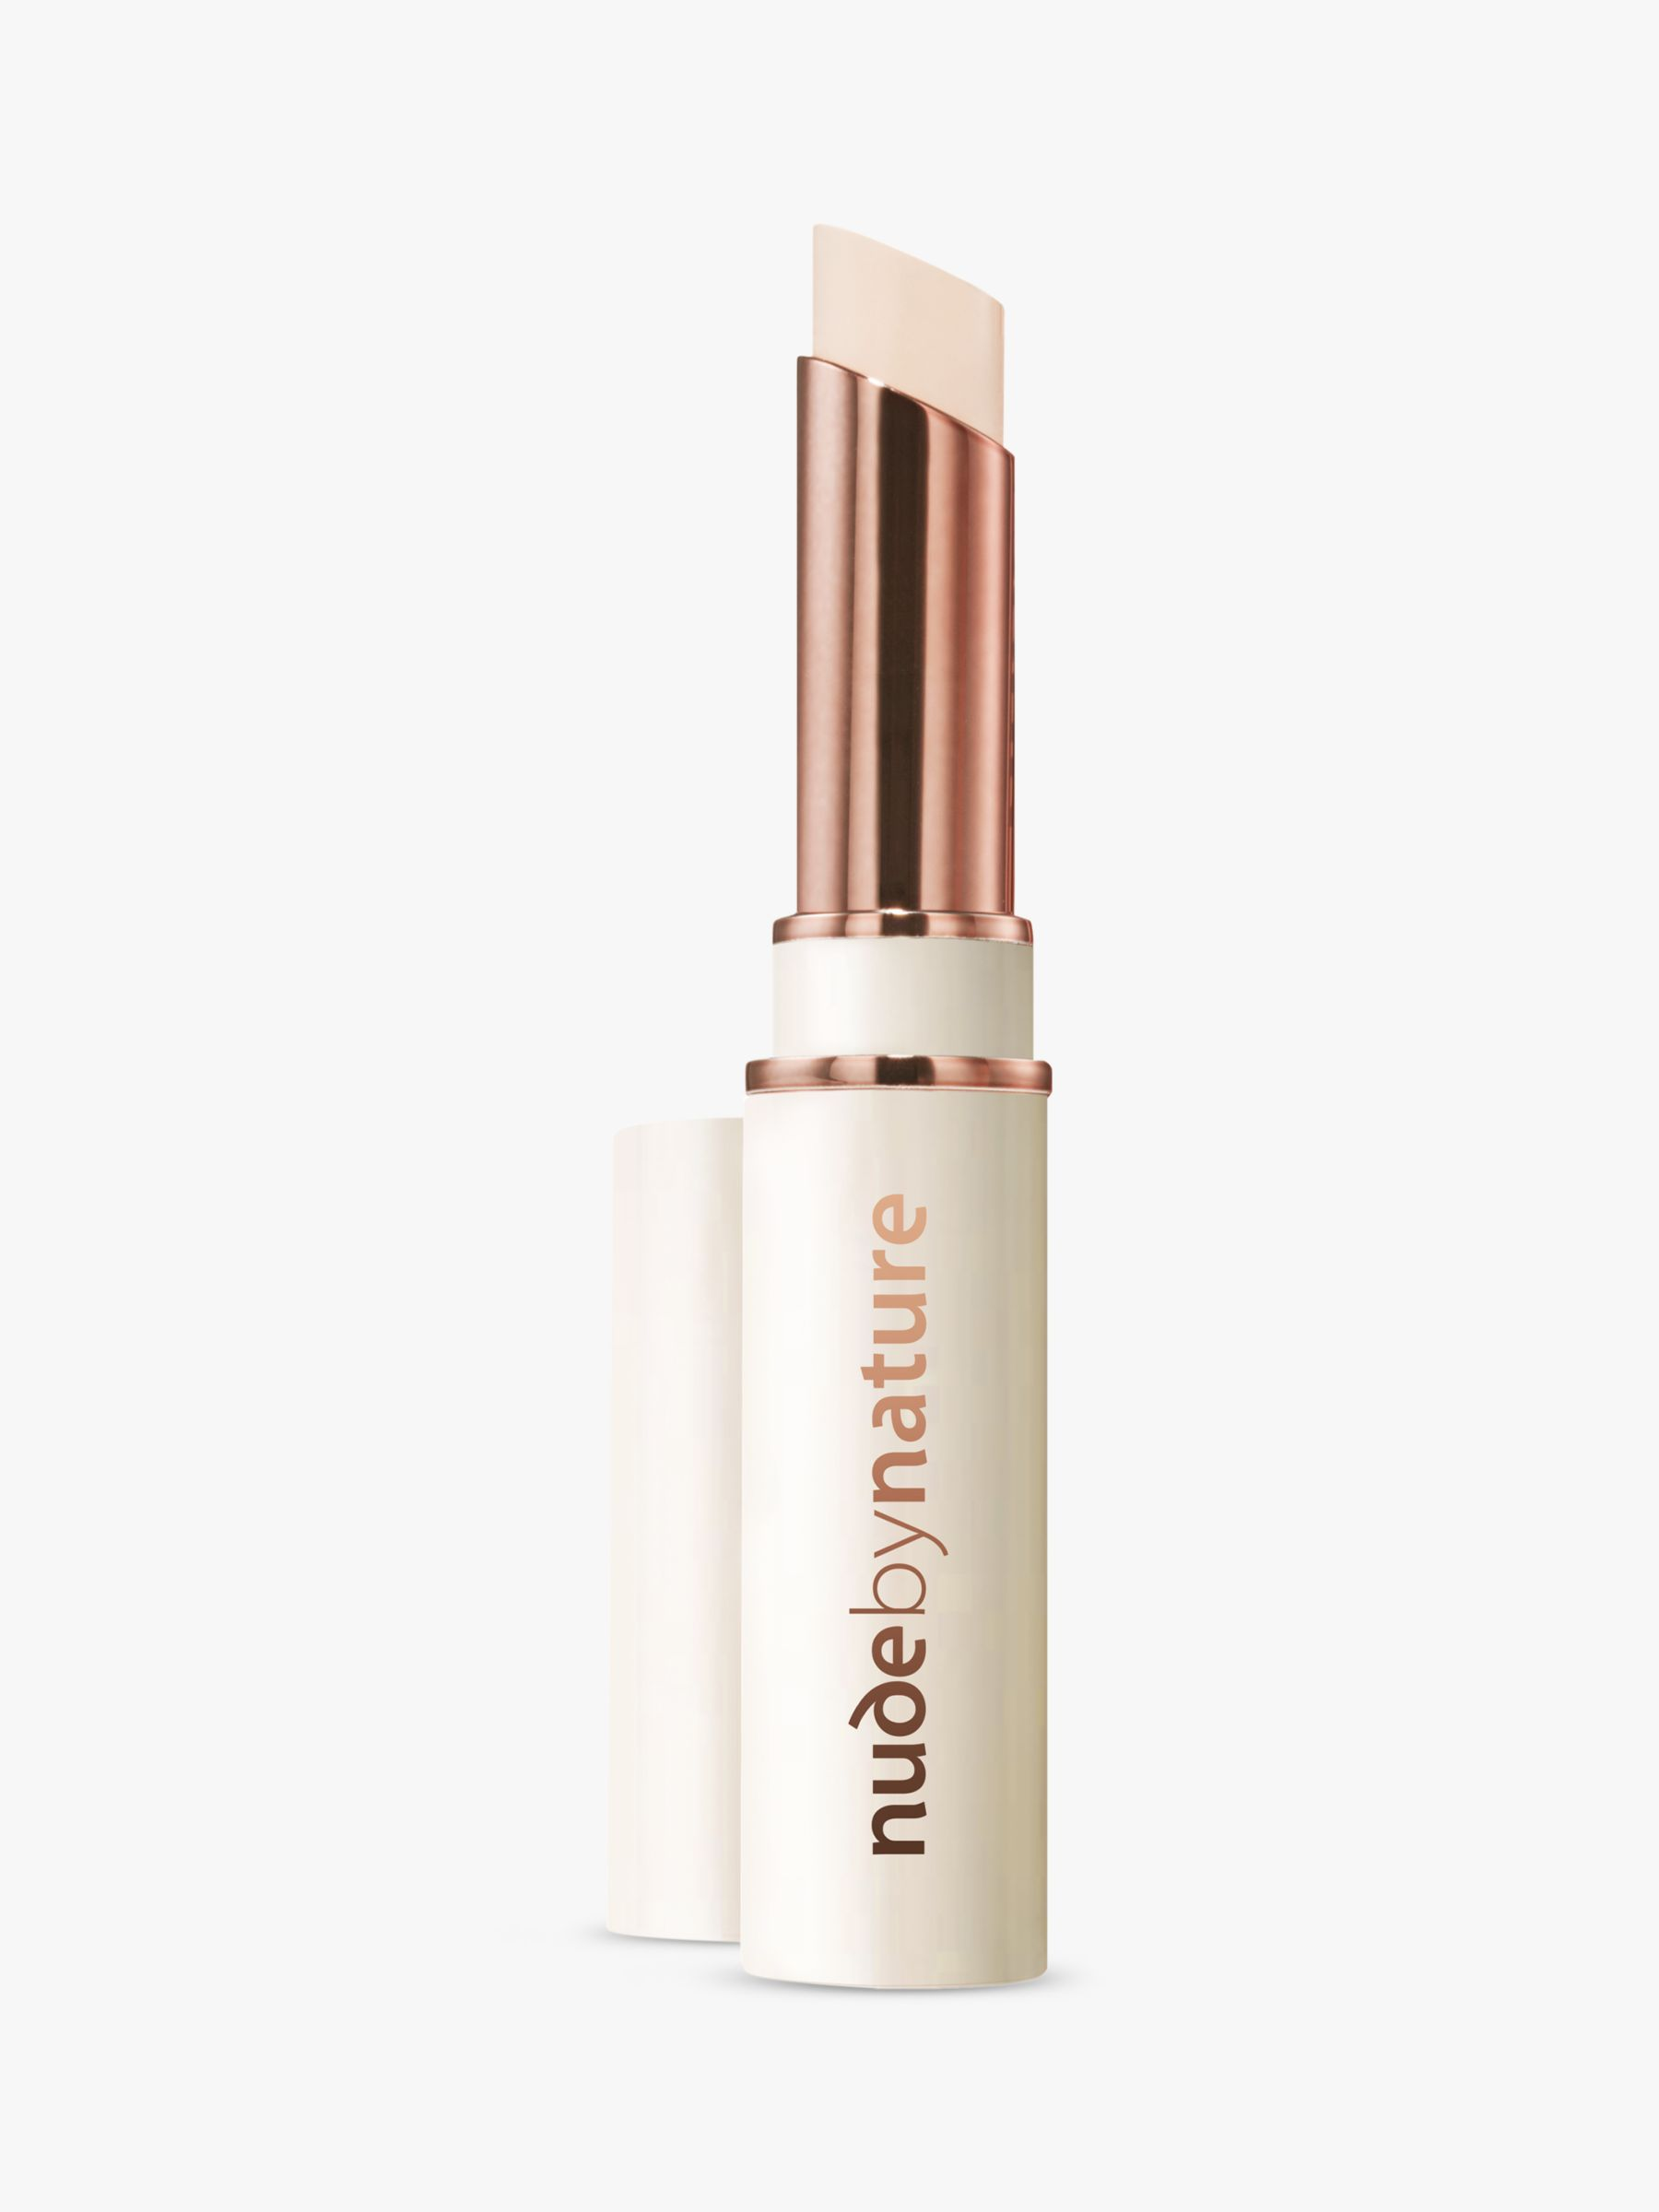 Nude by Nature Nude by Nature Perfecting Lip Primer, 2.5g